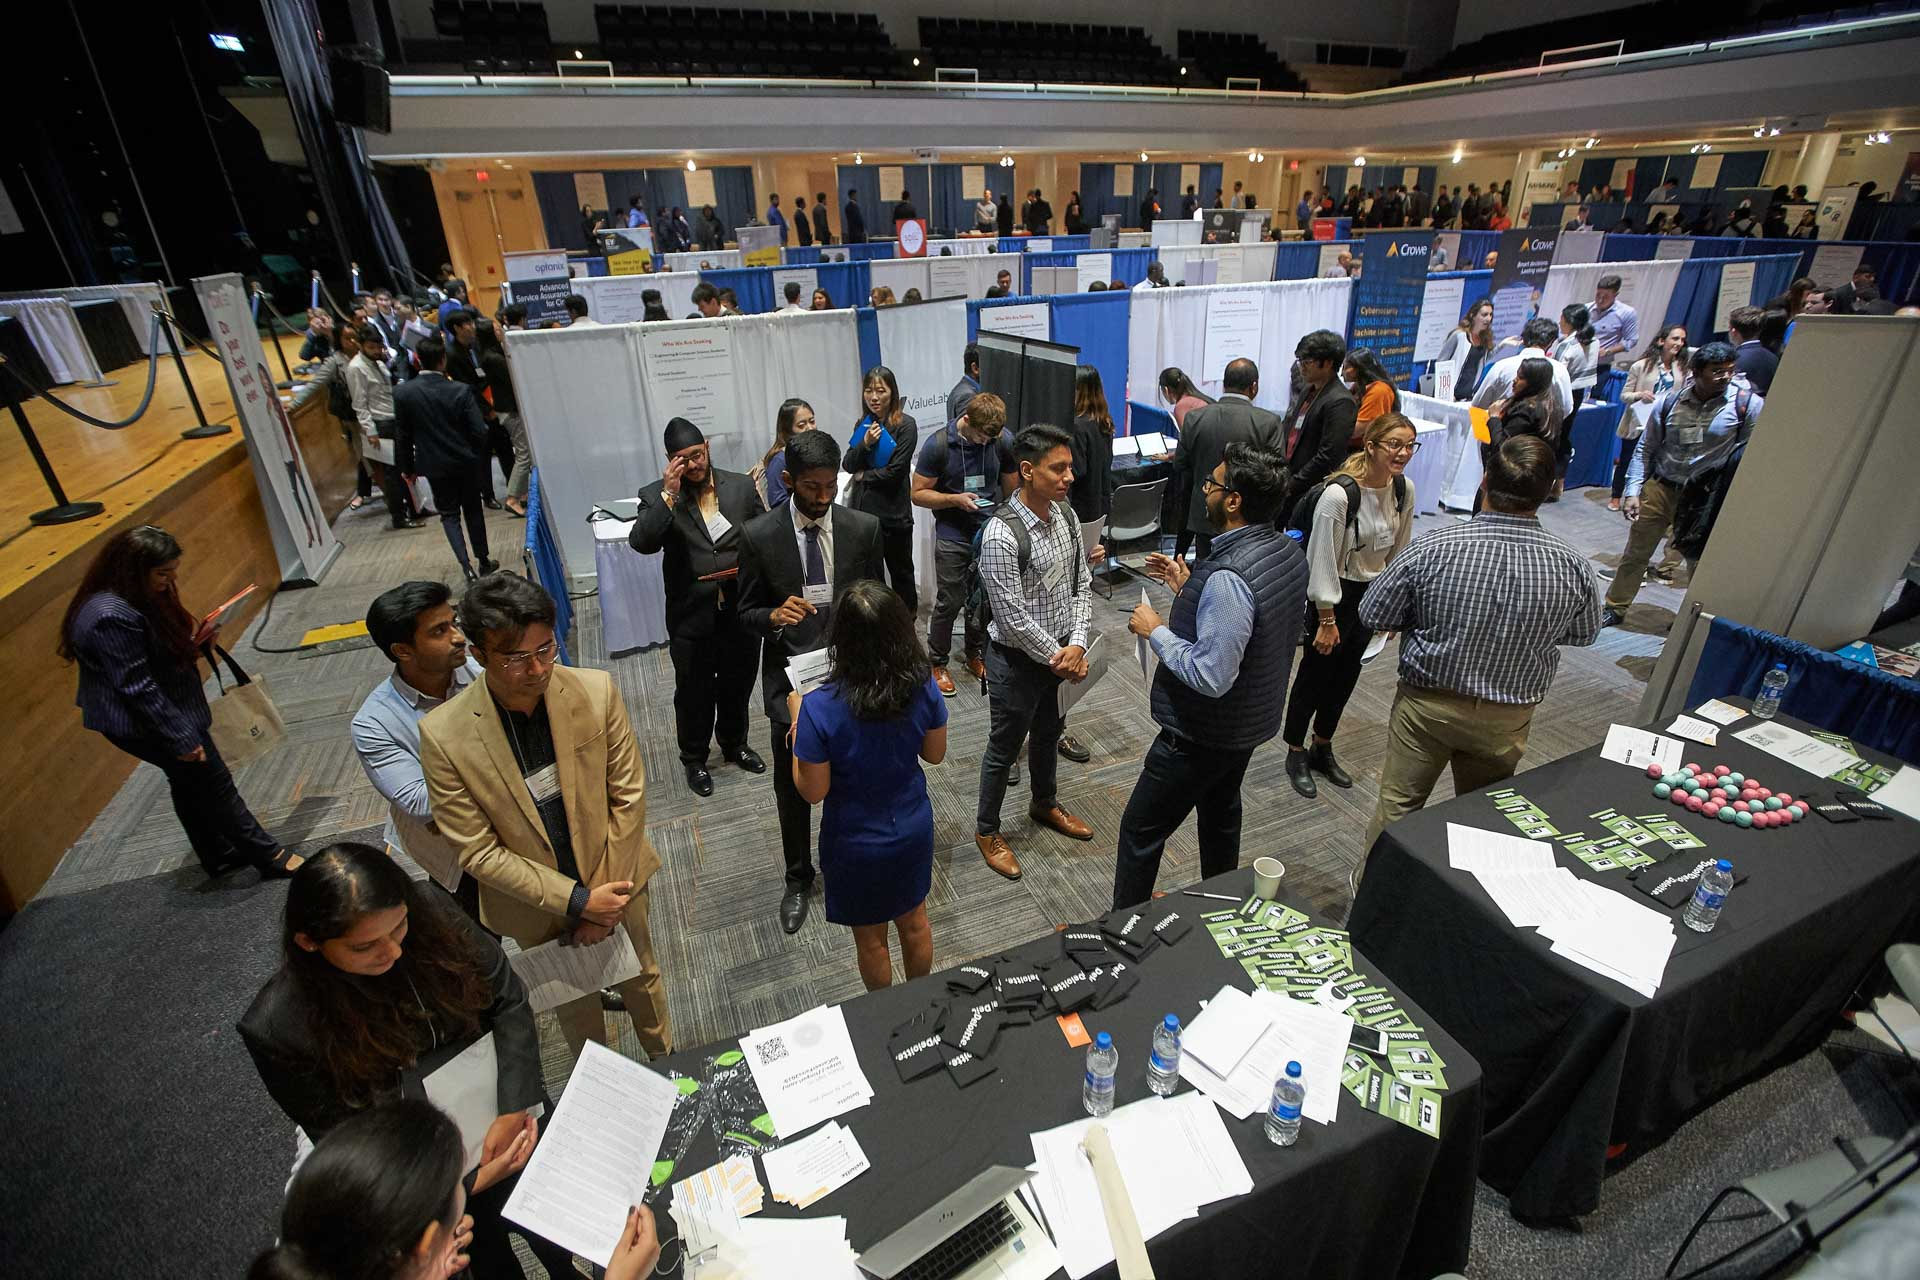 Students and employers mingle at a career fair in Goldstein Auditorium, seen from above